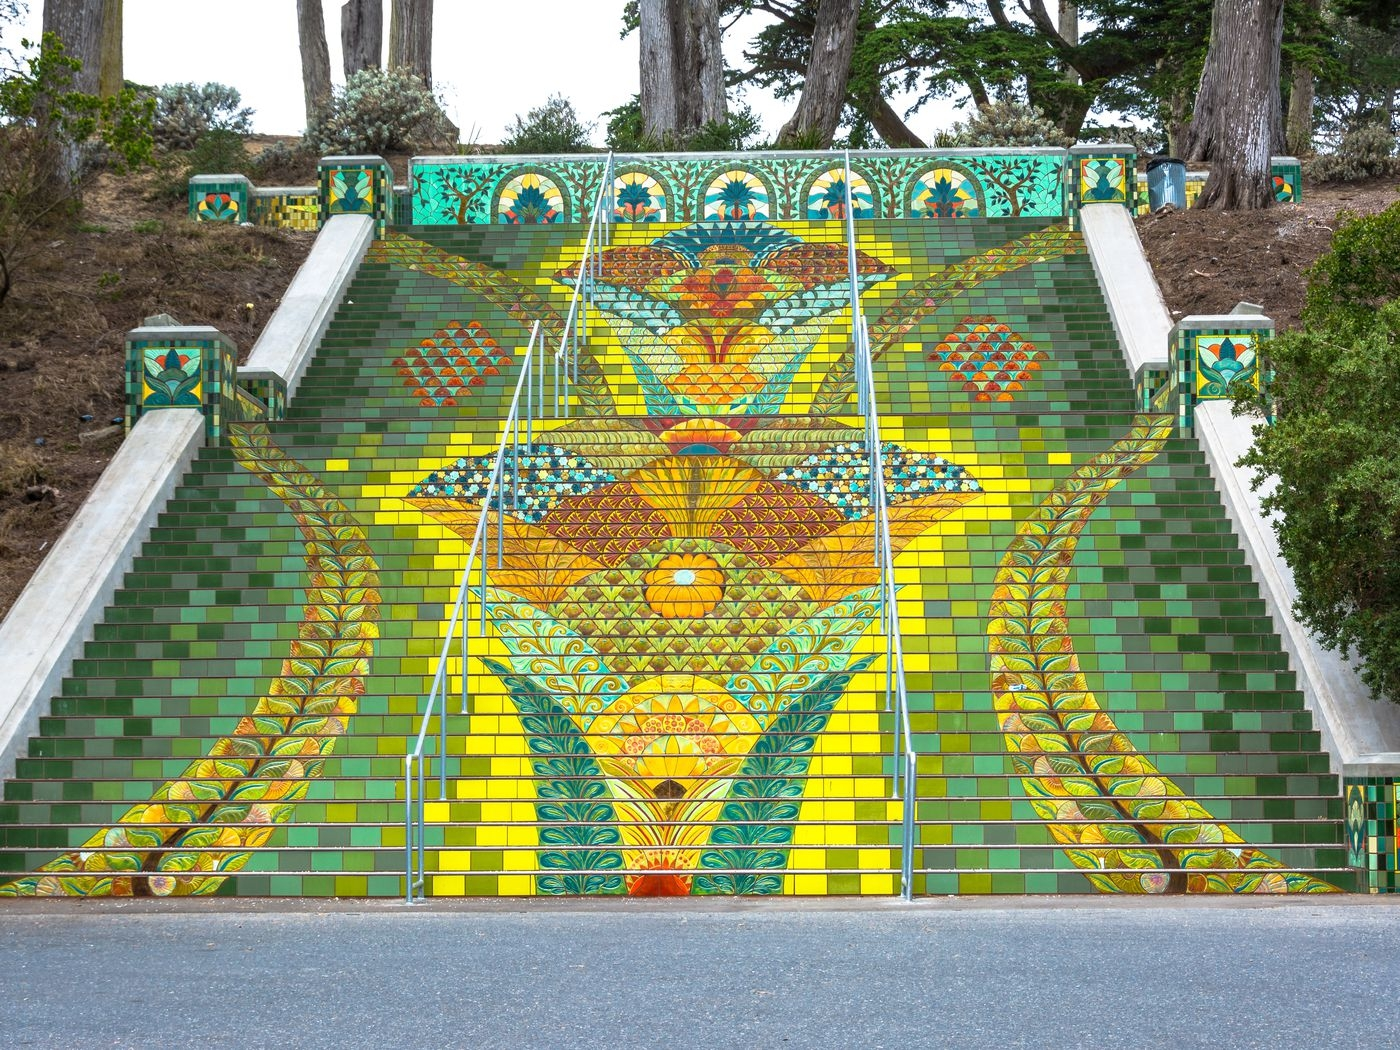 City Stairs In The U S 15 Beautiful Urban Staircases Curbed   Spiral Staircase Los Angeles   Old Fashioned   Most Efficient   Double Spiral   Rome   Topanga Canyon